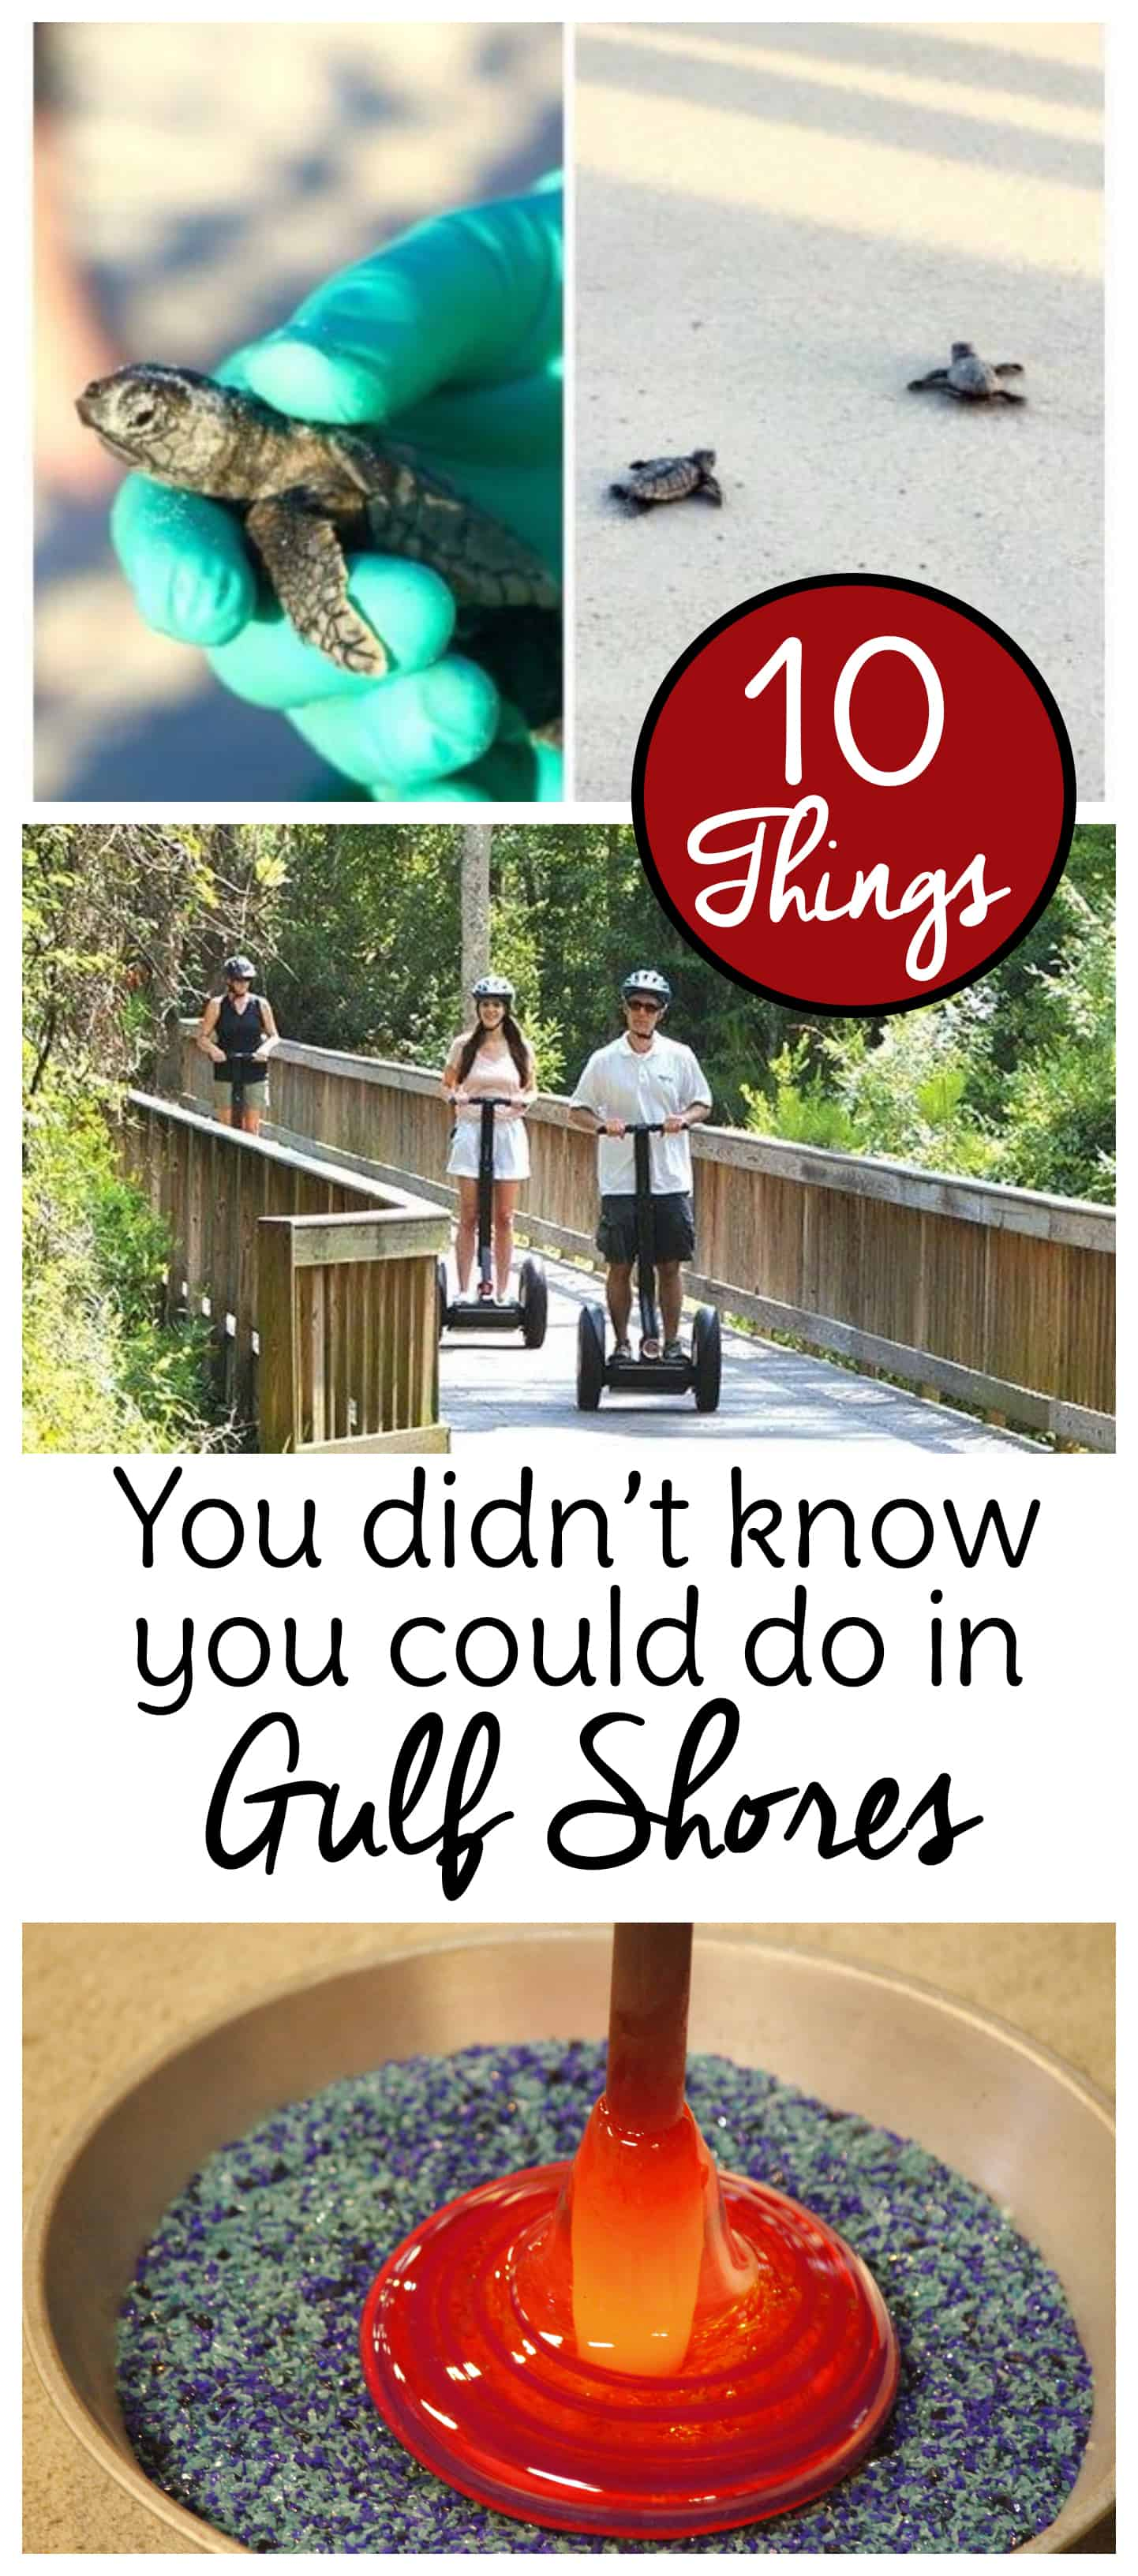 10 unique things to do in Gulf Shores Alabama that you may not have tried yet. Make your next Gulf Shores vacation even more memorable with one of these special activities. #gulfshores #familytravel #travel